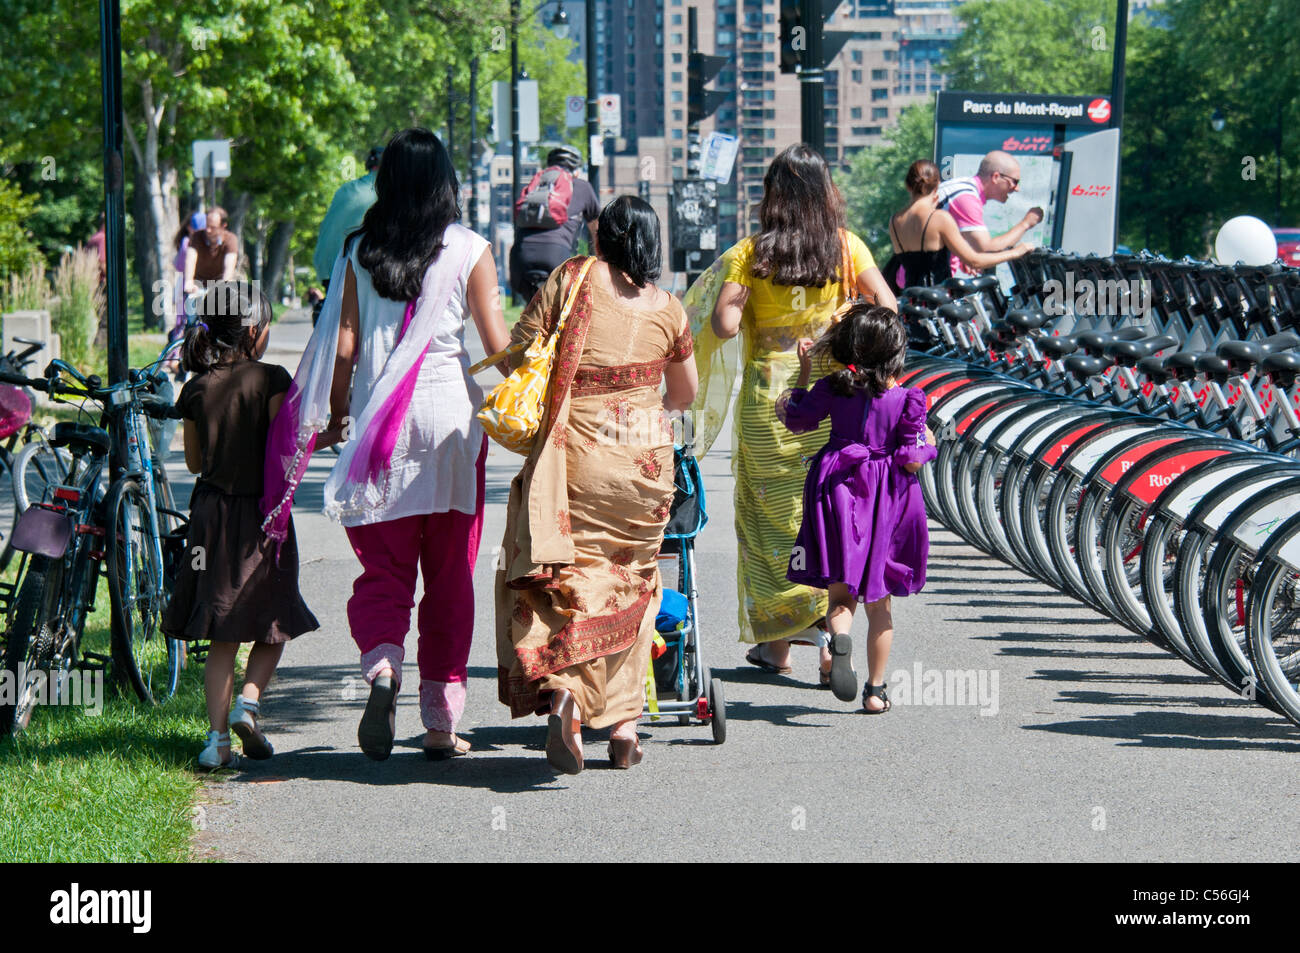 hindu single men in montreal Reasons why white american women don't indian men are usually at the bottem of the totem pole of inter-racial dating positives of indian indian men smell god.